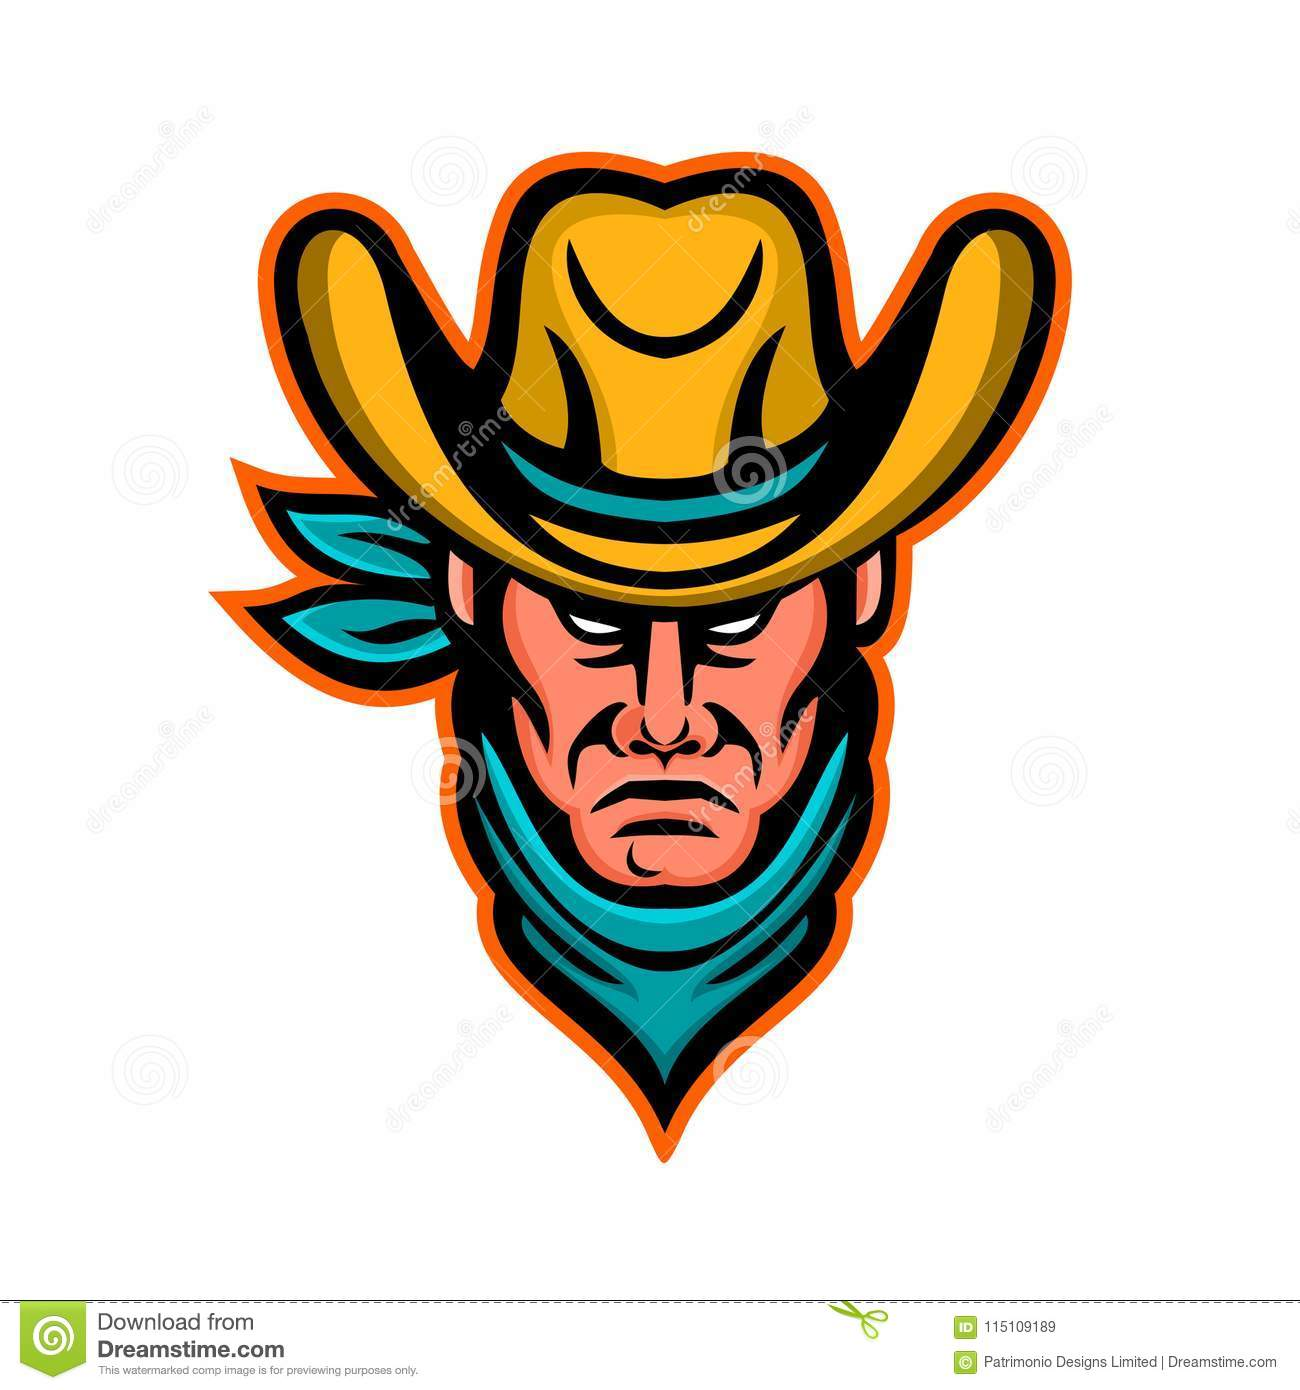 f2c749331c5 Mascot icon illustration of head of an American cowboy wearing kerchief and  hat viewed from front on isolated background in retro style.